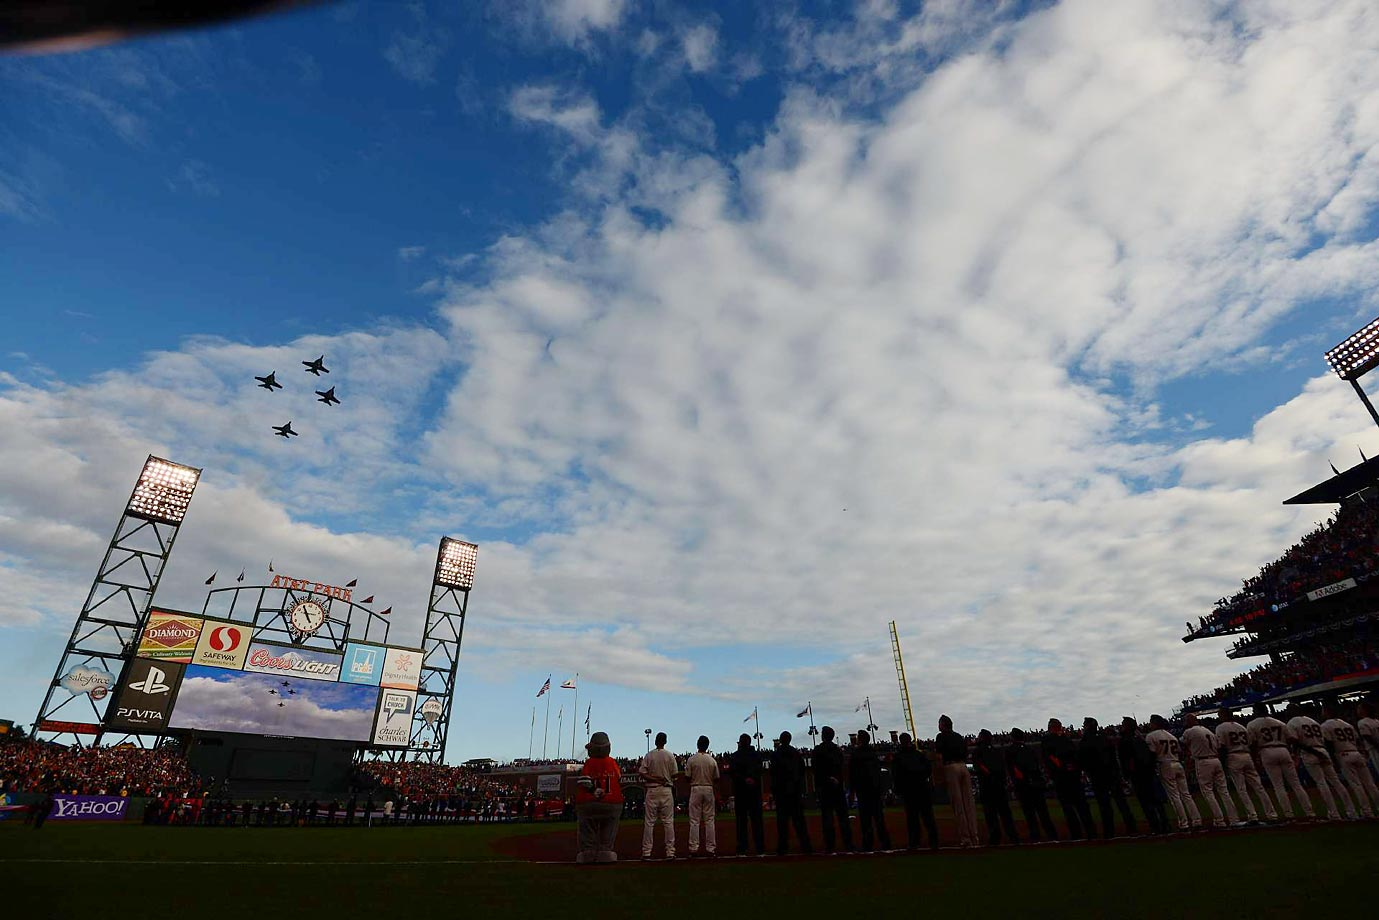 Jets flyover during the national anthem before Game 1 of the 2012 World Series between the Detroit Tigers and San Francisco Giants.